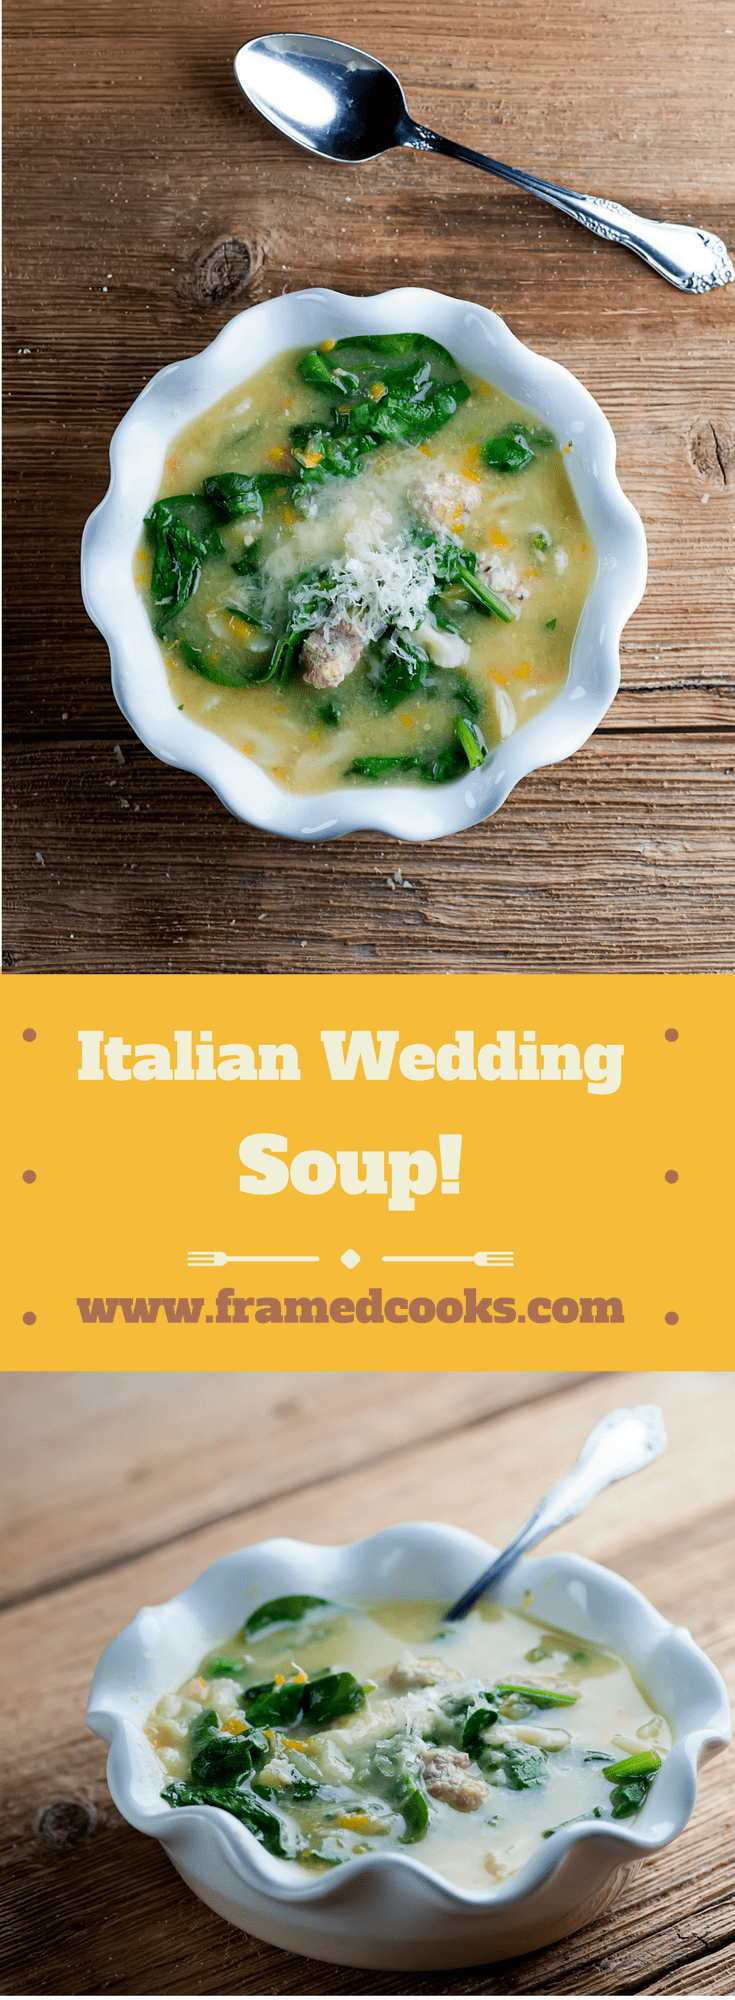 Nothing says true love like a nice hot bowl of Italian wedding soup.  Use this easy recipe to make some for your sweetheart today!